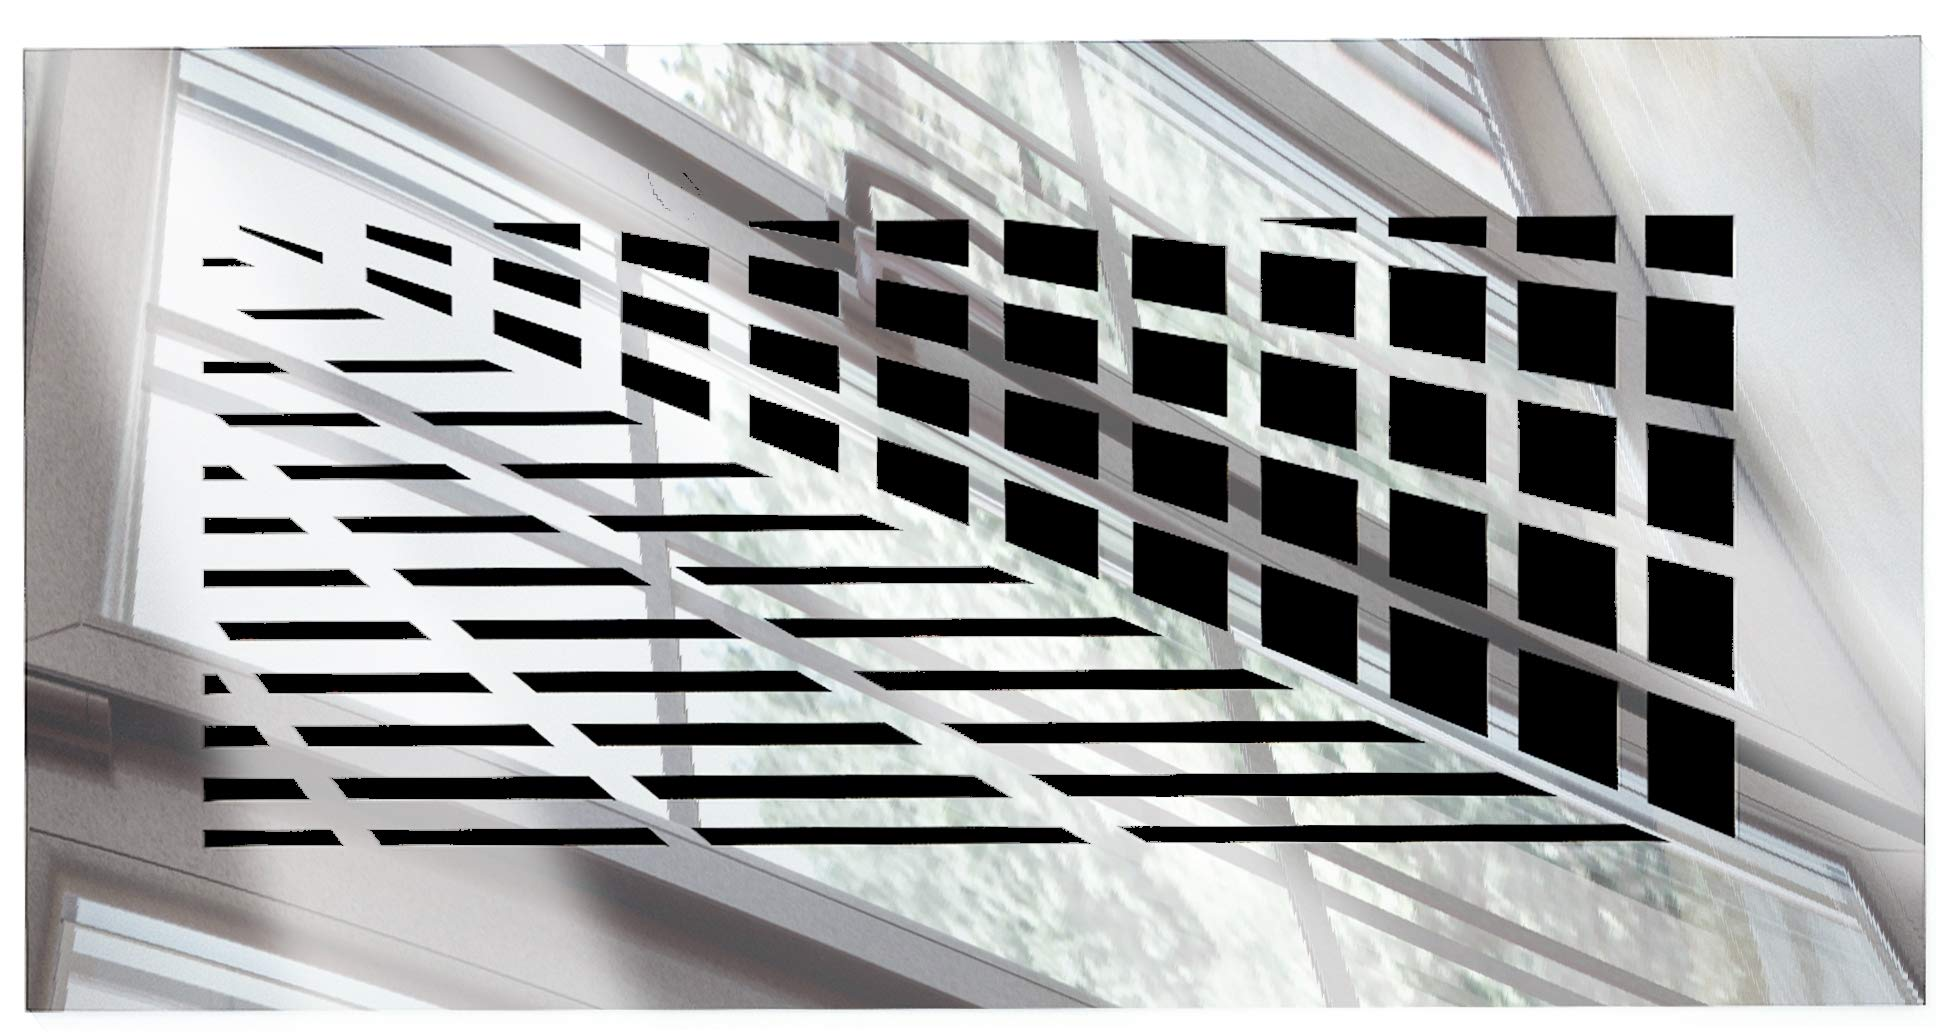 SABA Air Vent Covers Register - Acrylic Fiberglass Grille 14'' x 6'' Duct Opening (17'' x 9'' Overall) Silver Mirror Finish Decorative Cover for Walls and Ceilings (not for Floor use), Vivian